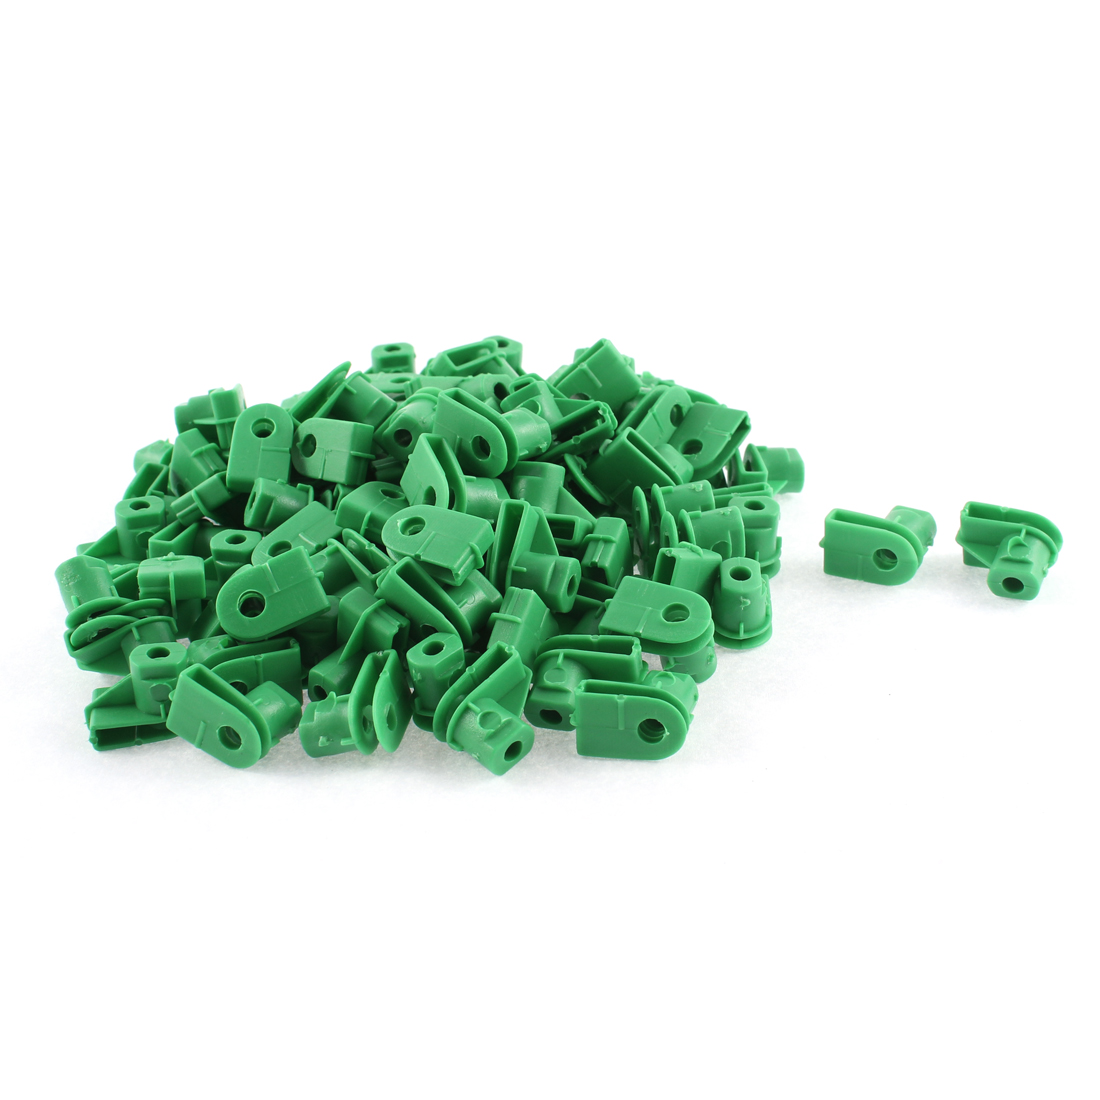 Unique Bargains 100 Pcs Green Plastic Splash Guard Defender Bumper Mat Rivet for